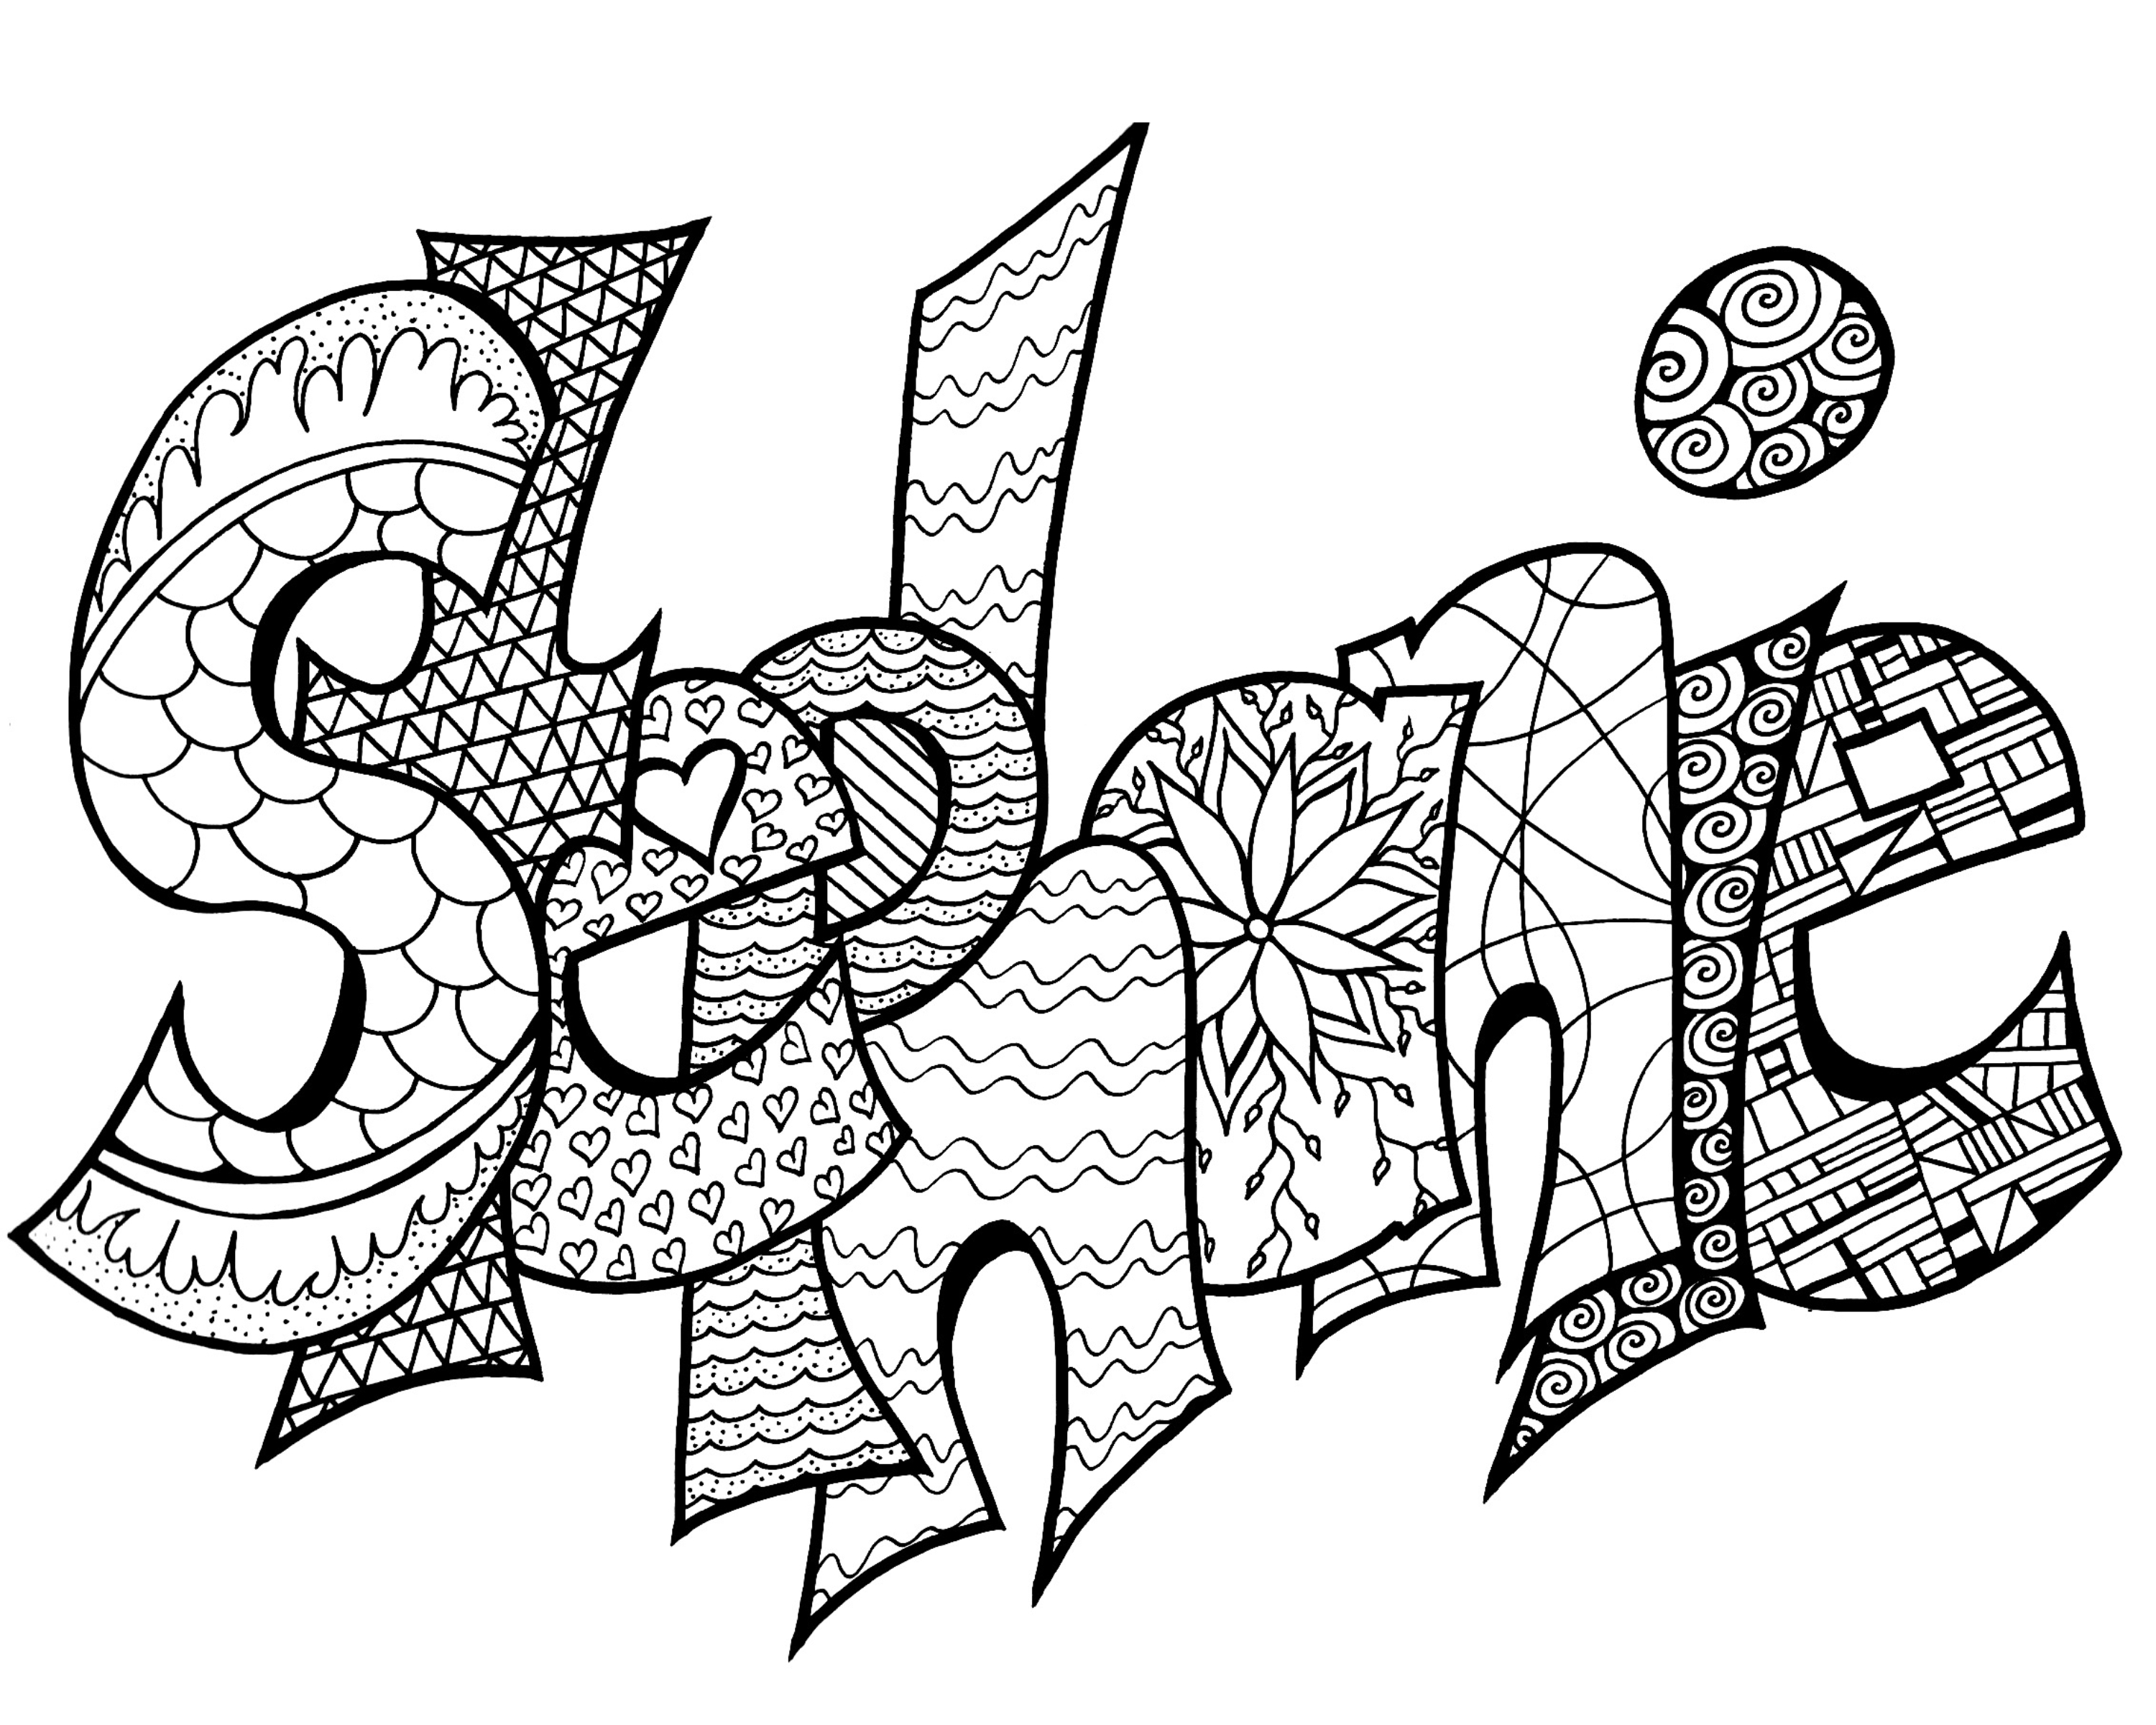 CLICK HERE TO DOWNLOAD Your Free Printable Coloring Page